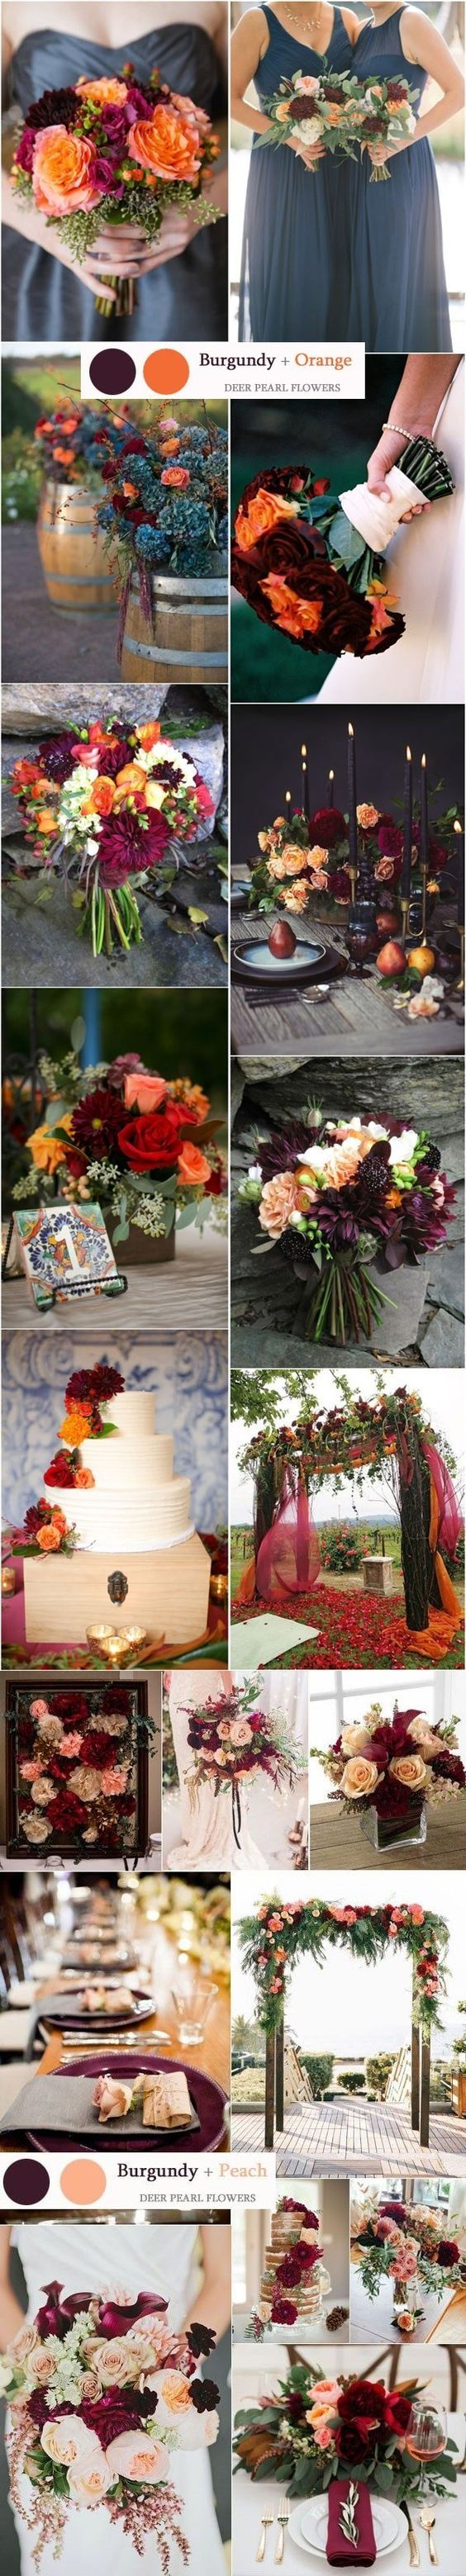 burgundy fall wedding colors ideas / http://www.deerpearlflowers.com/top-8-burgundy-wedding-color-palettes-youll-love/